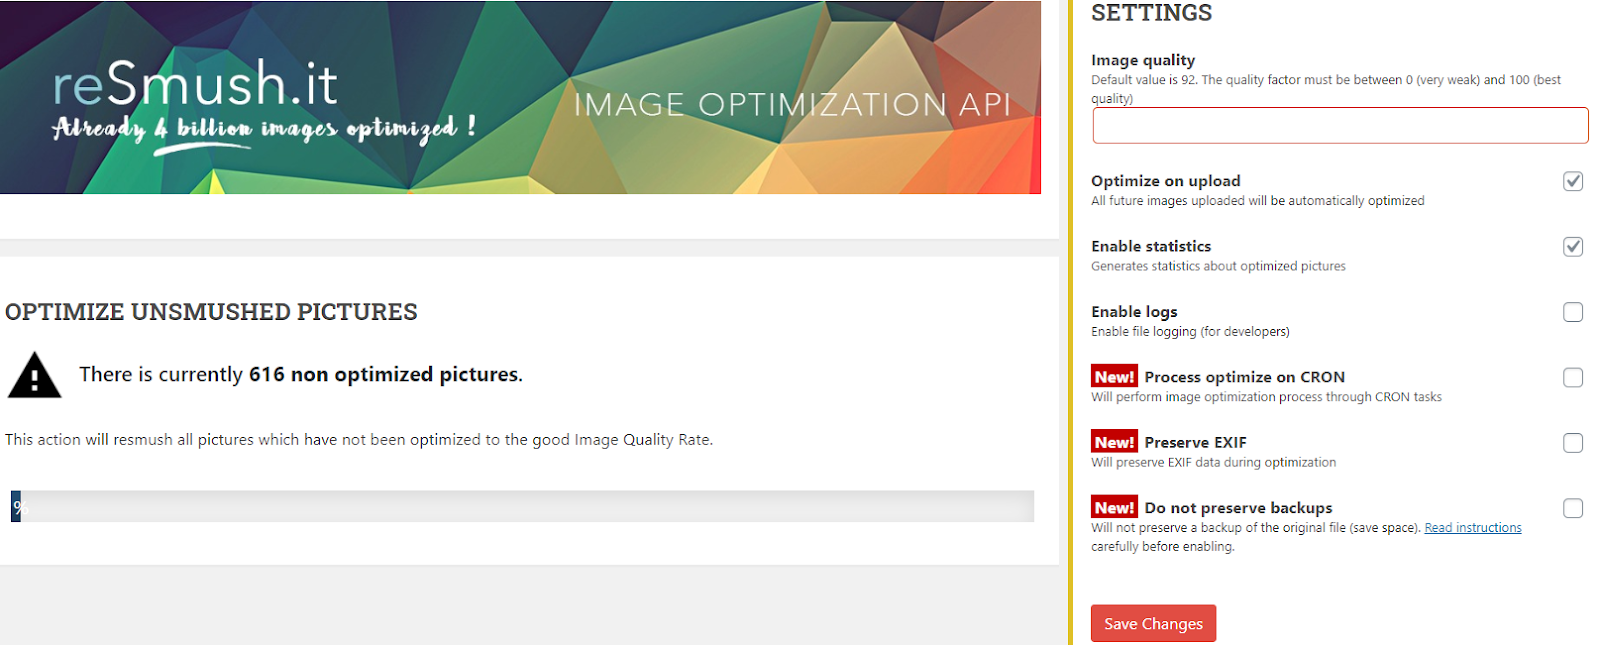 reSmush IT image optimization plugin for WordPress